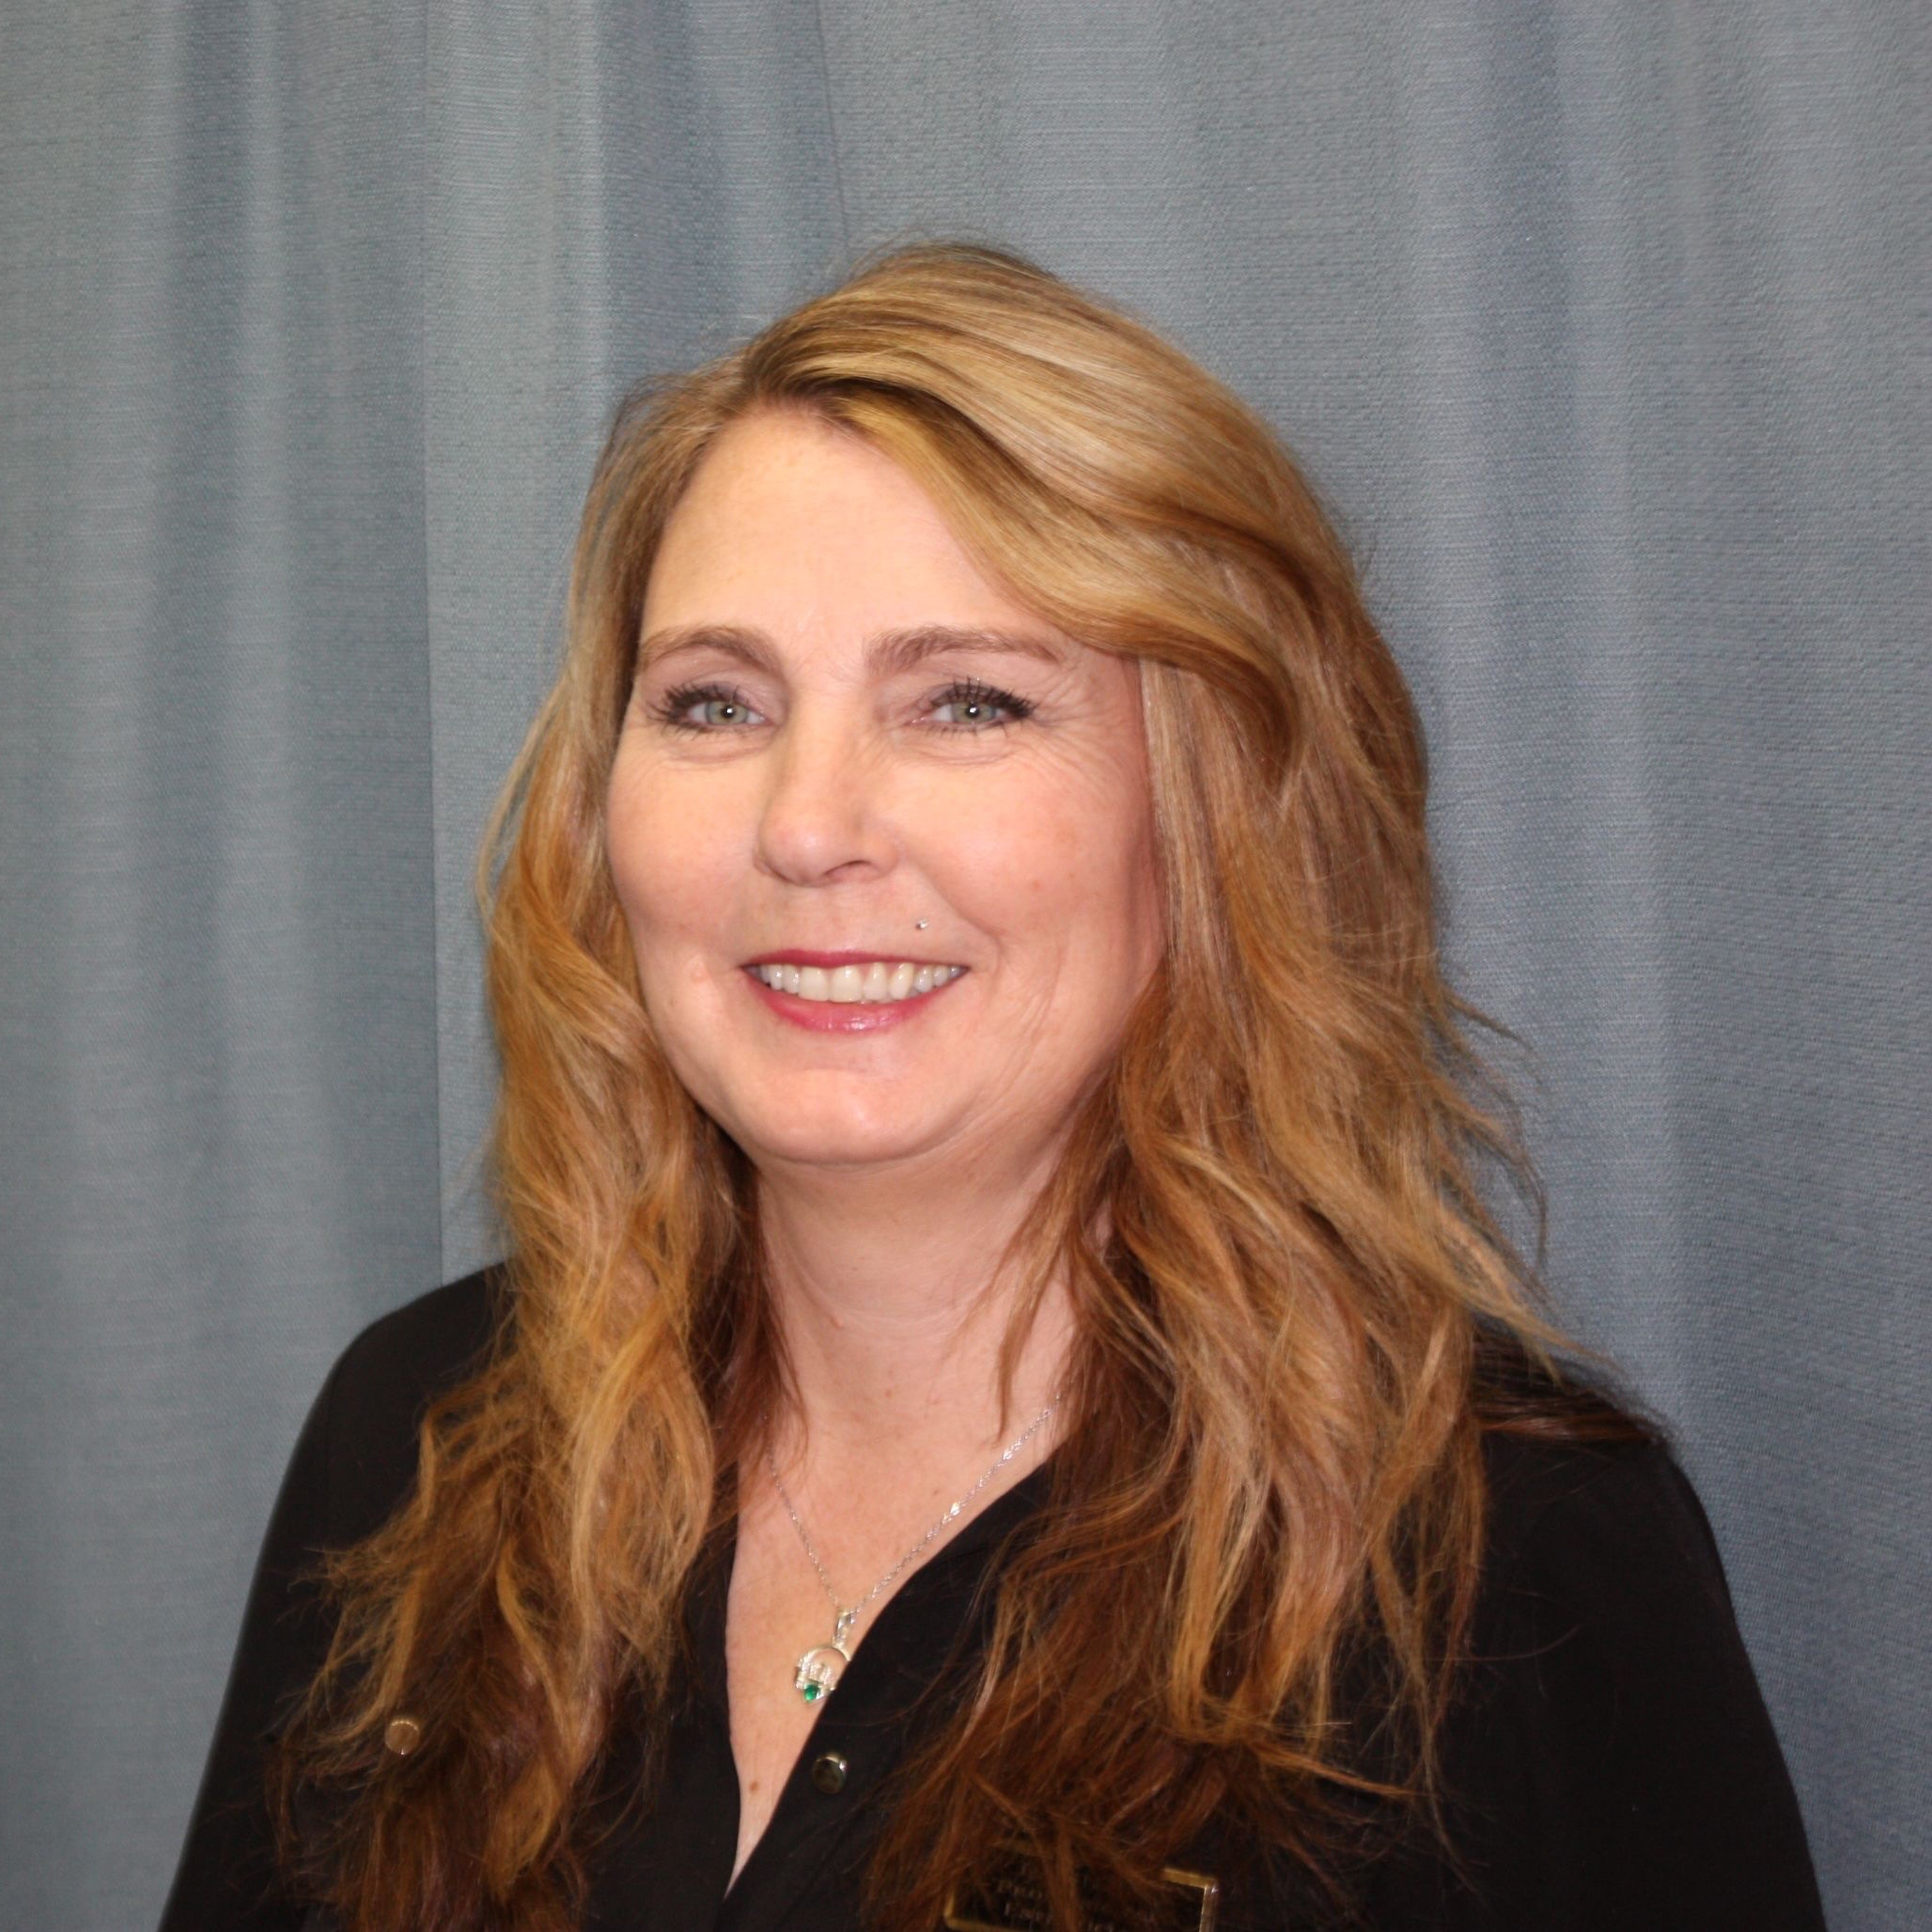 Owner and Certified Esthetician